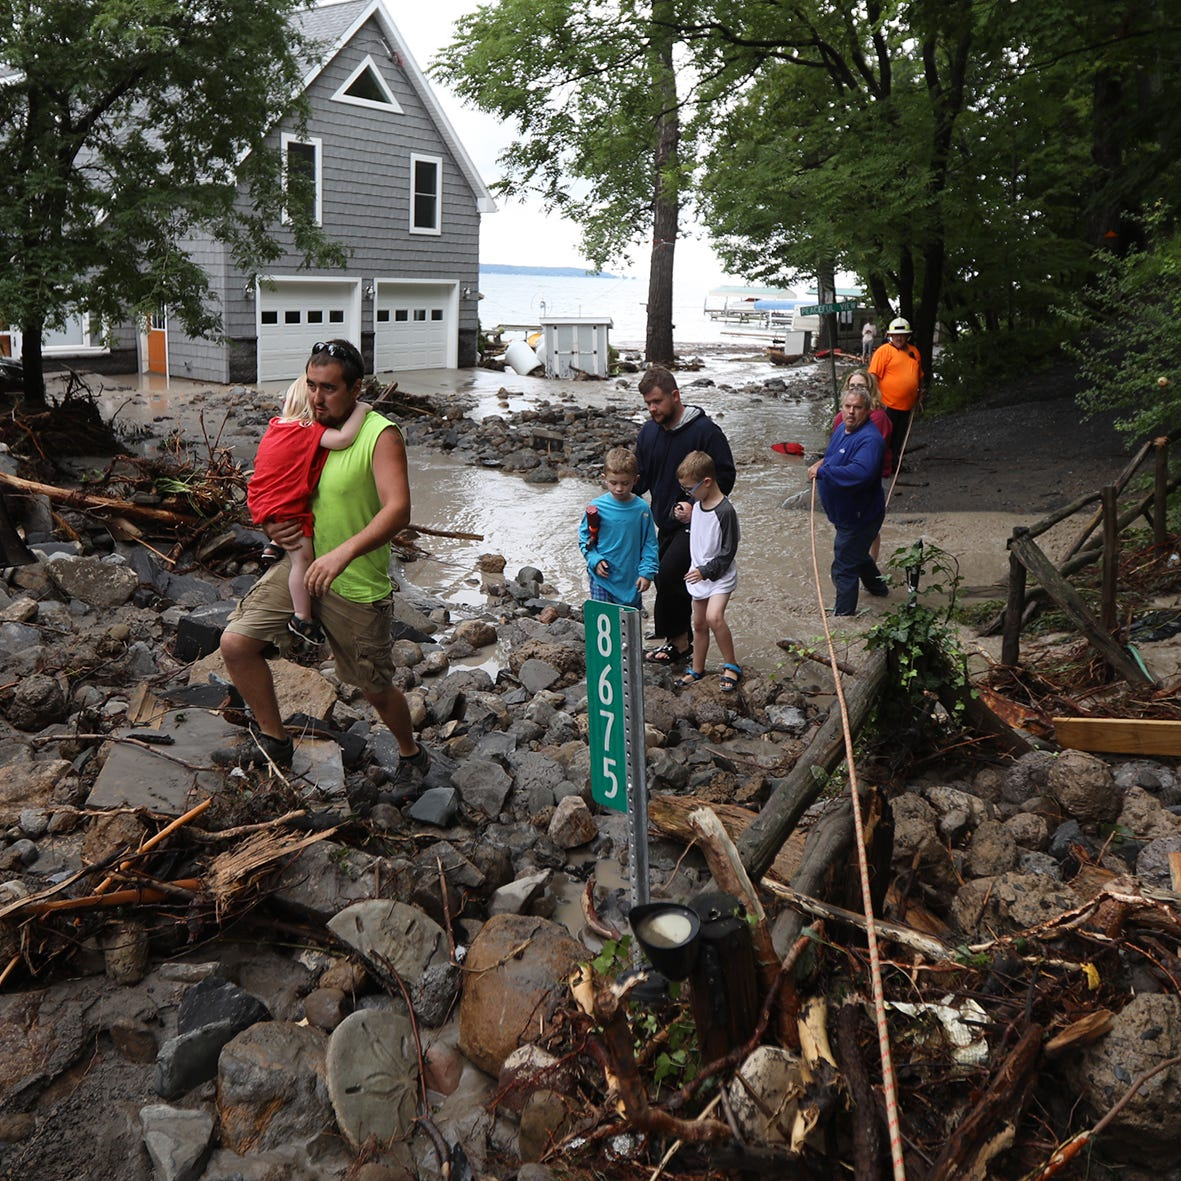 Amid widespread flooding, Seneca Lake fares the worst